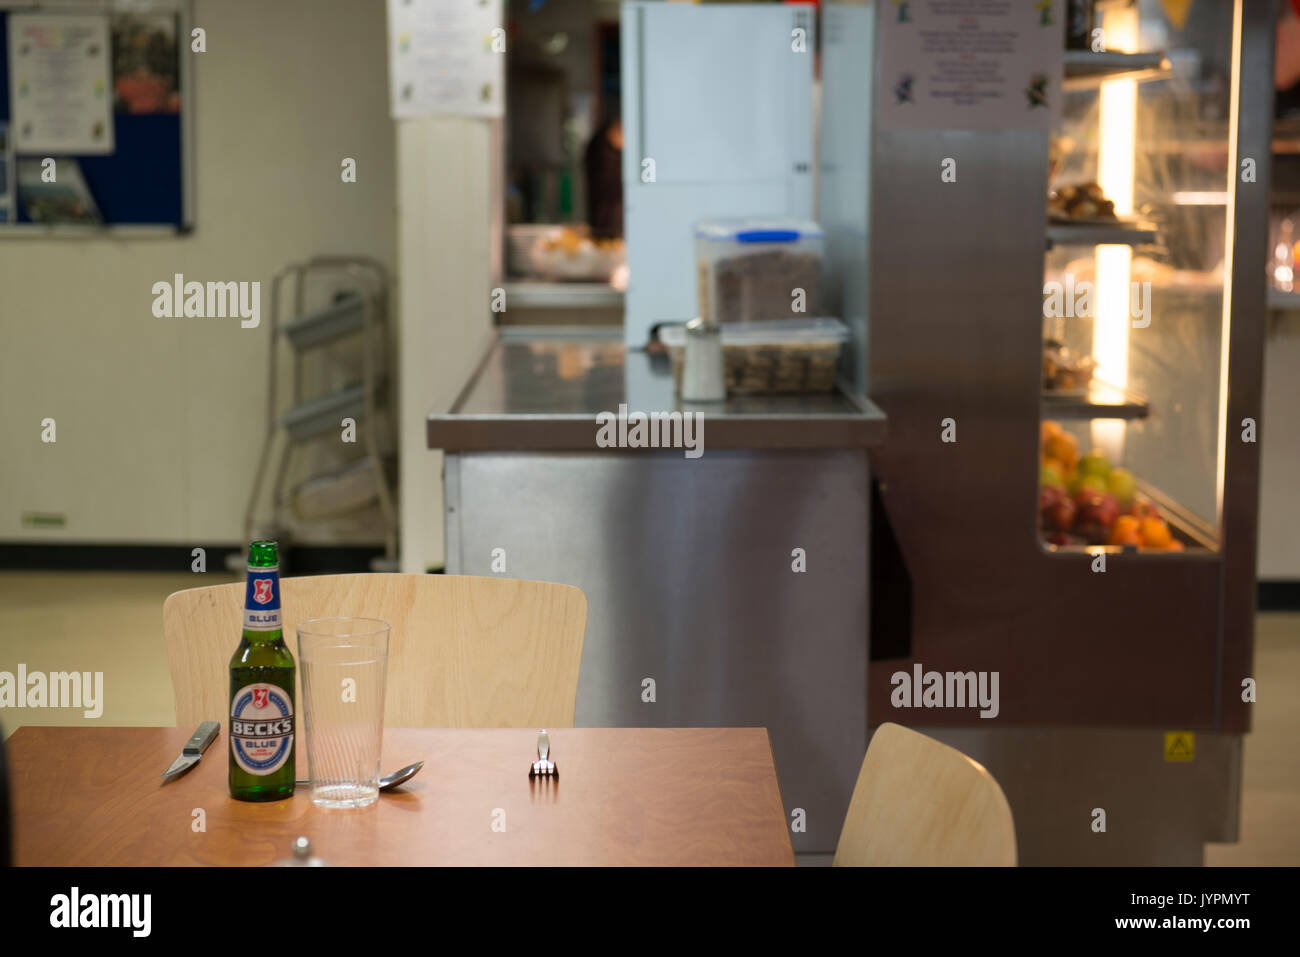 A dinner place setting, with a bottle of backs blue non-alcoholic larger. On an oil and gas rig, in the North Sea. - Stock Image